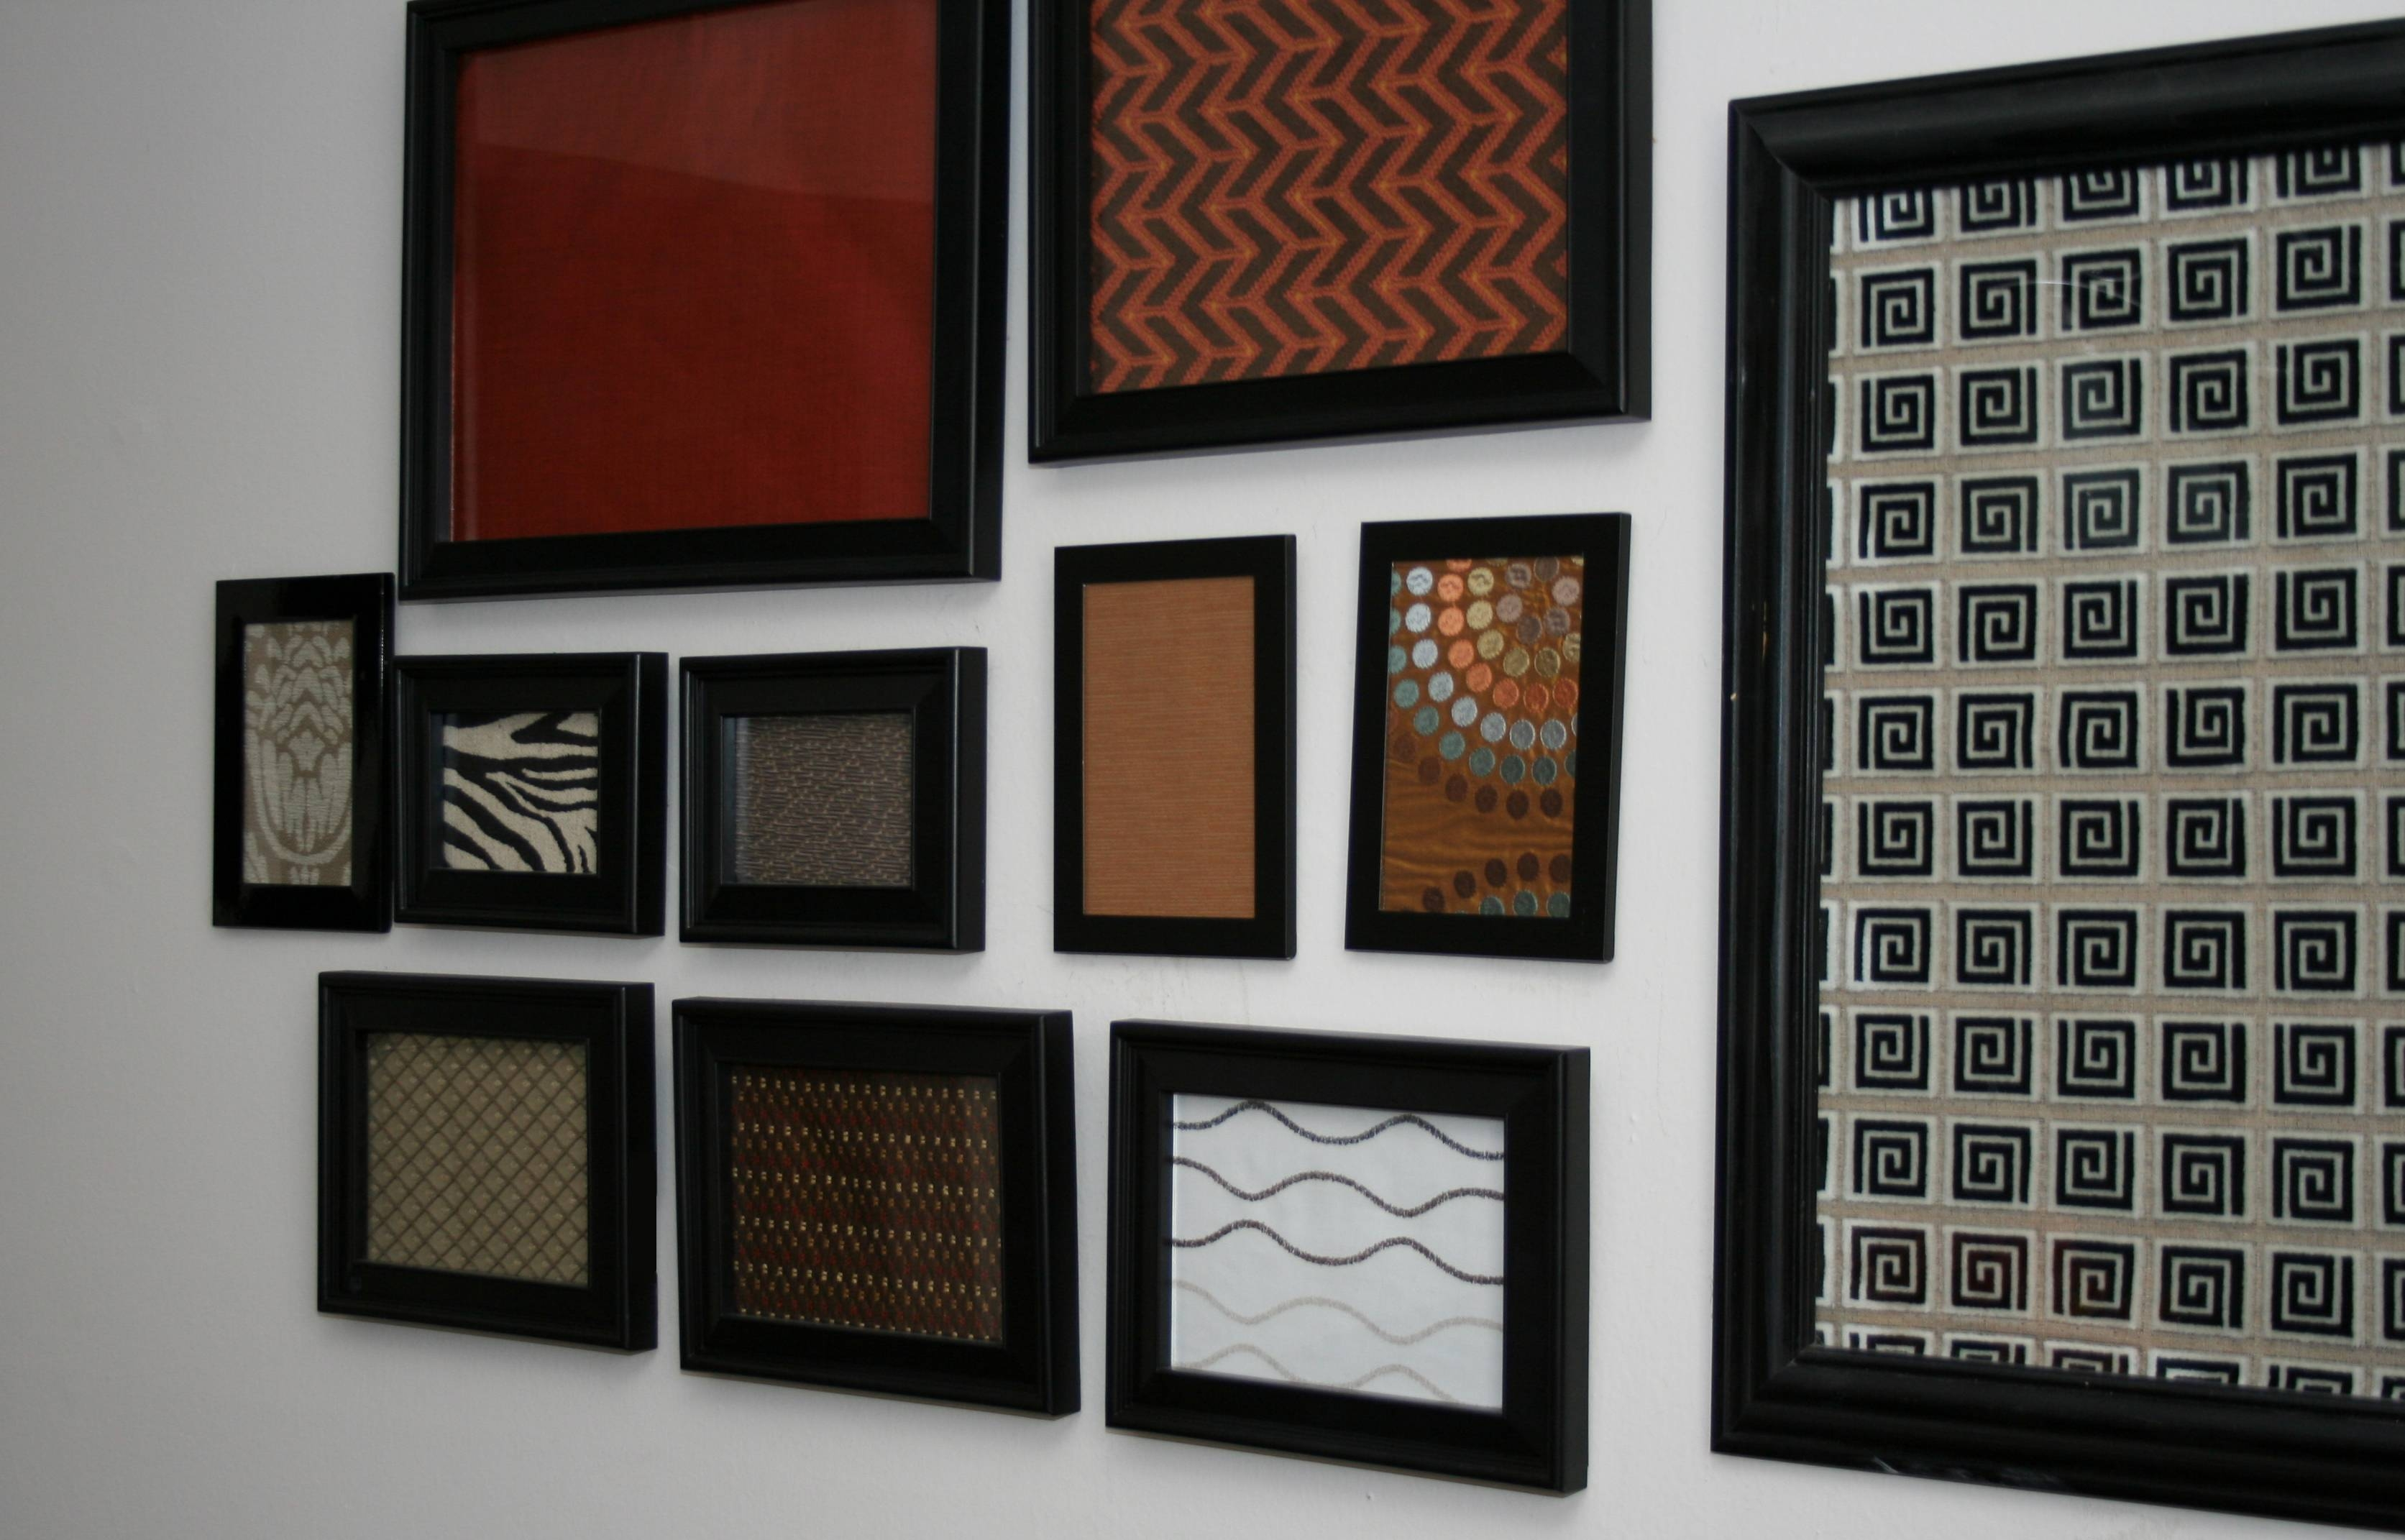 Art: Framed Fabric Wall Art Pertaining To Most Up To Date Framed Fabric Wall Art (View 13 of 20)